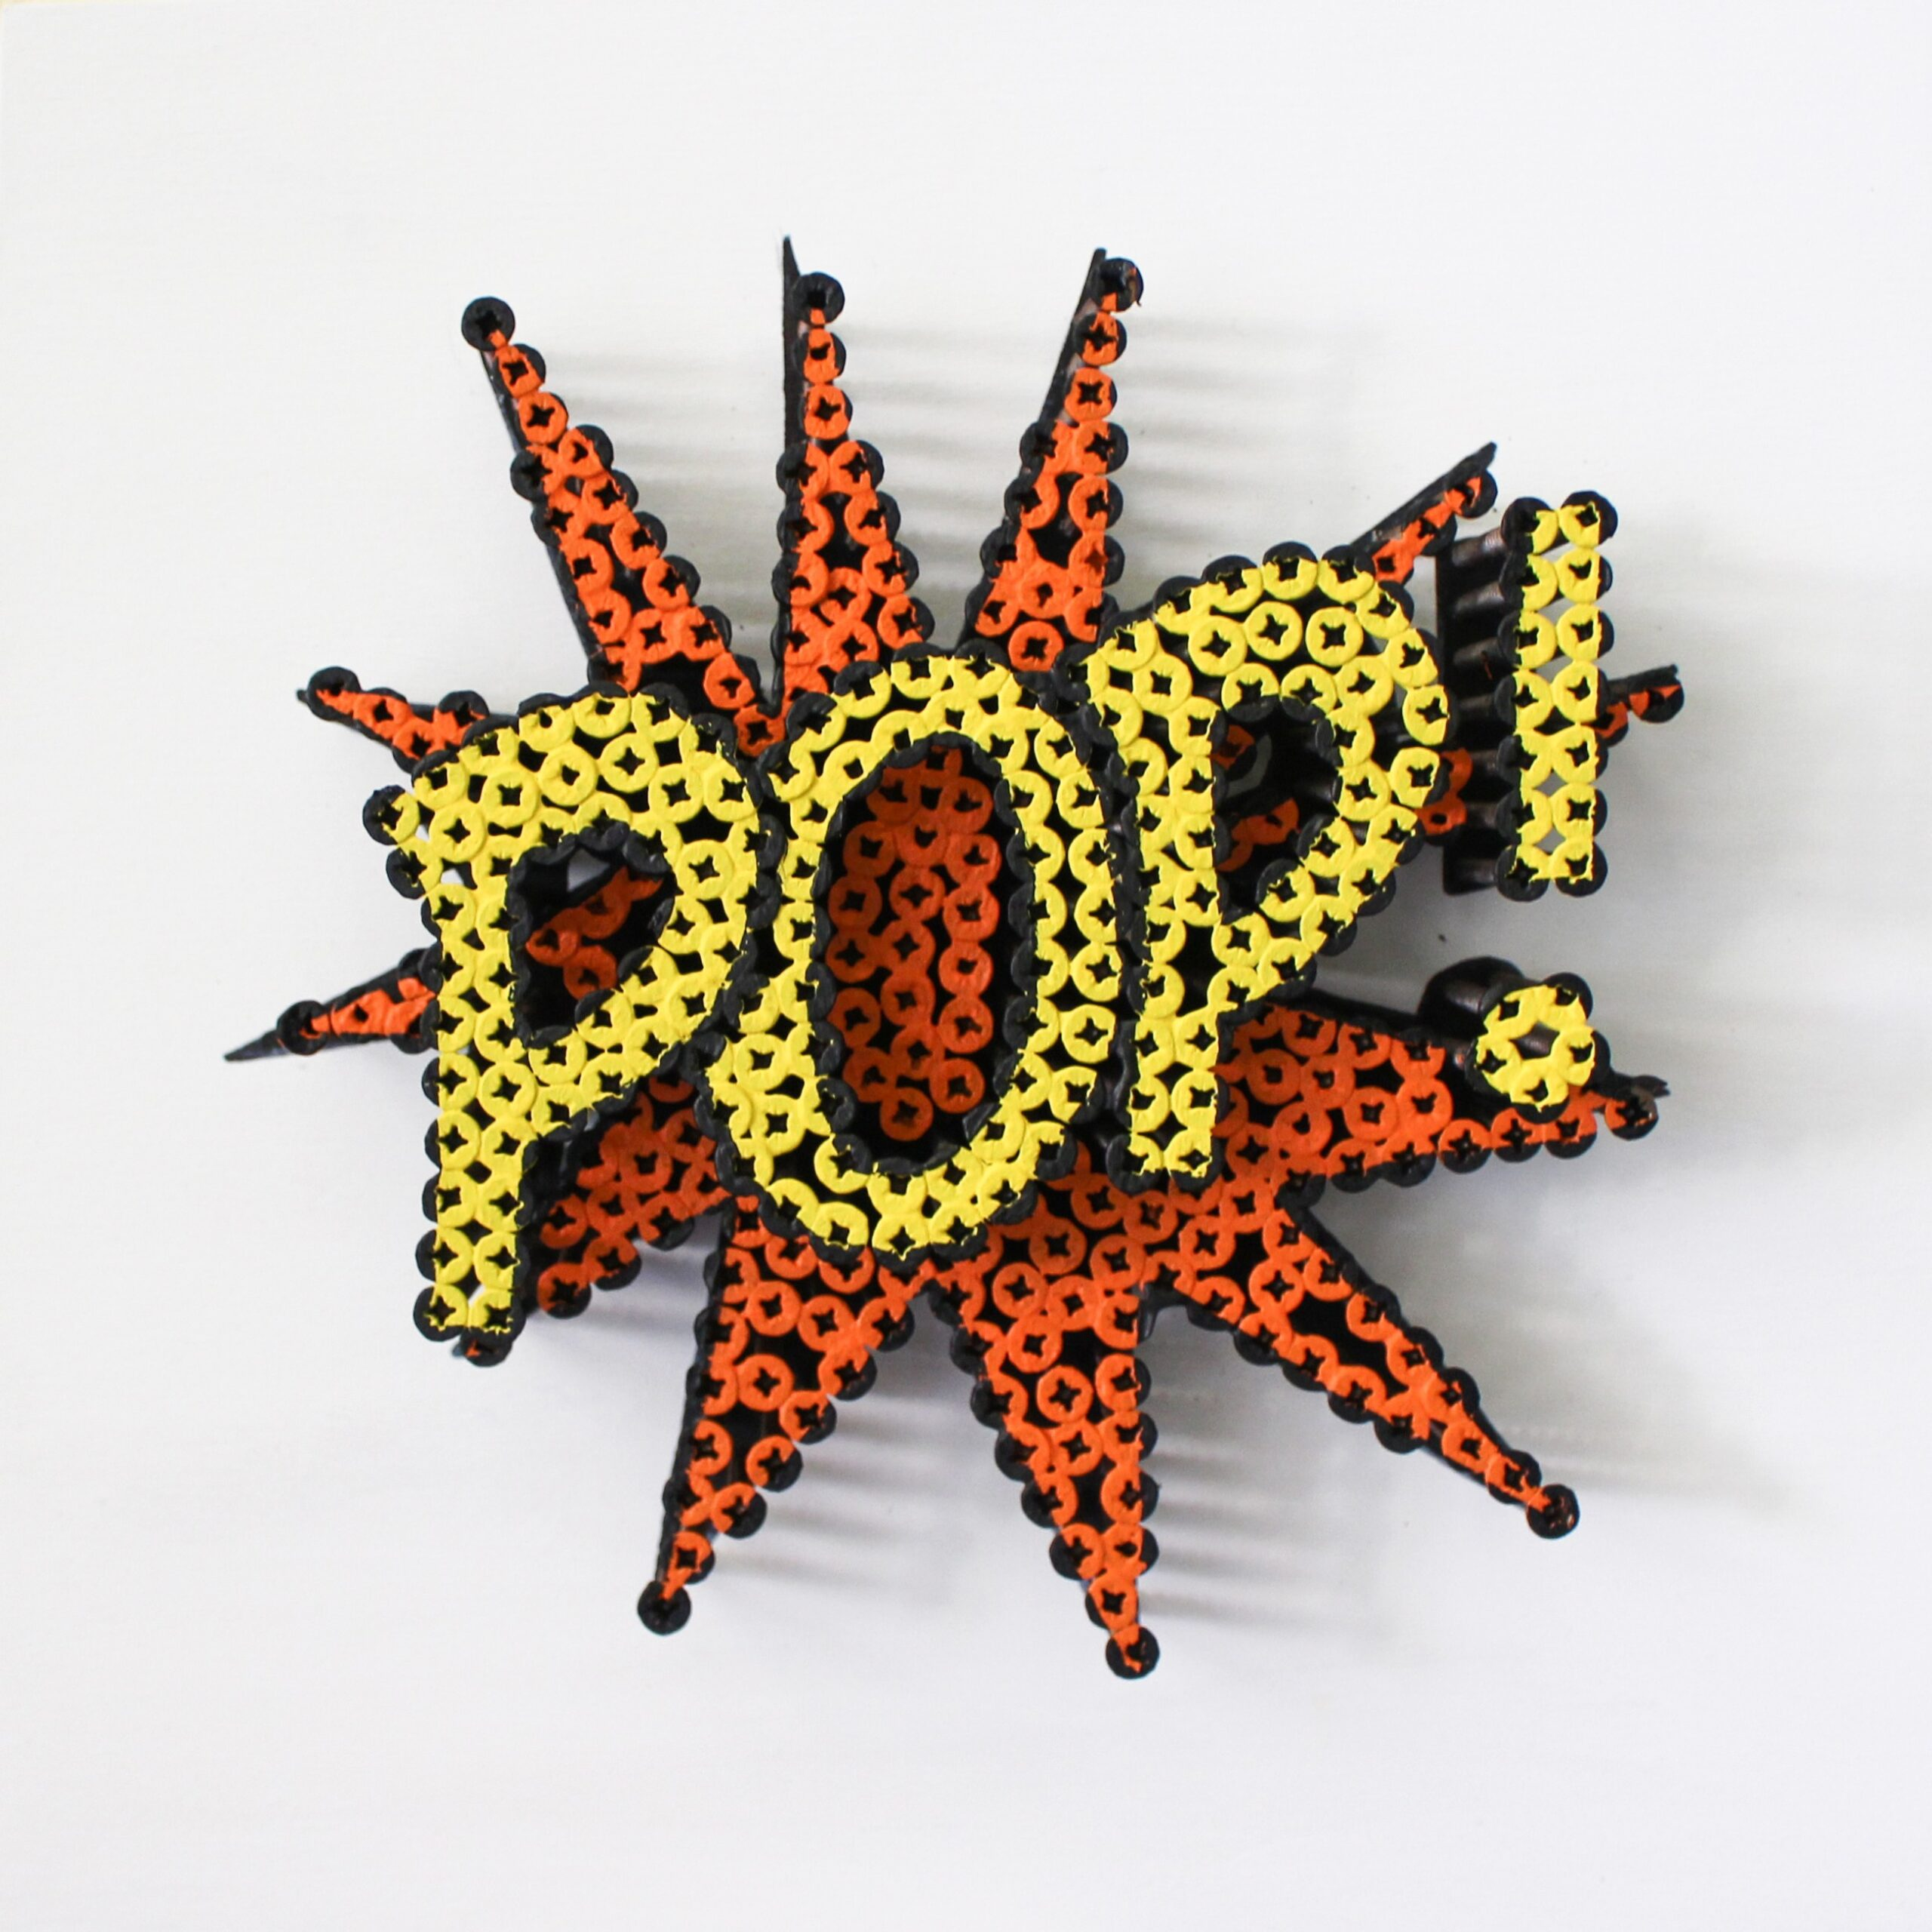 Alessandro Padovan - Screw art - Mini Pop oranje